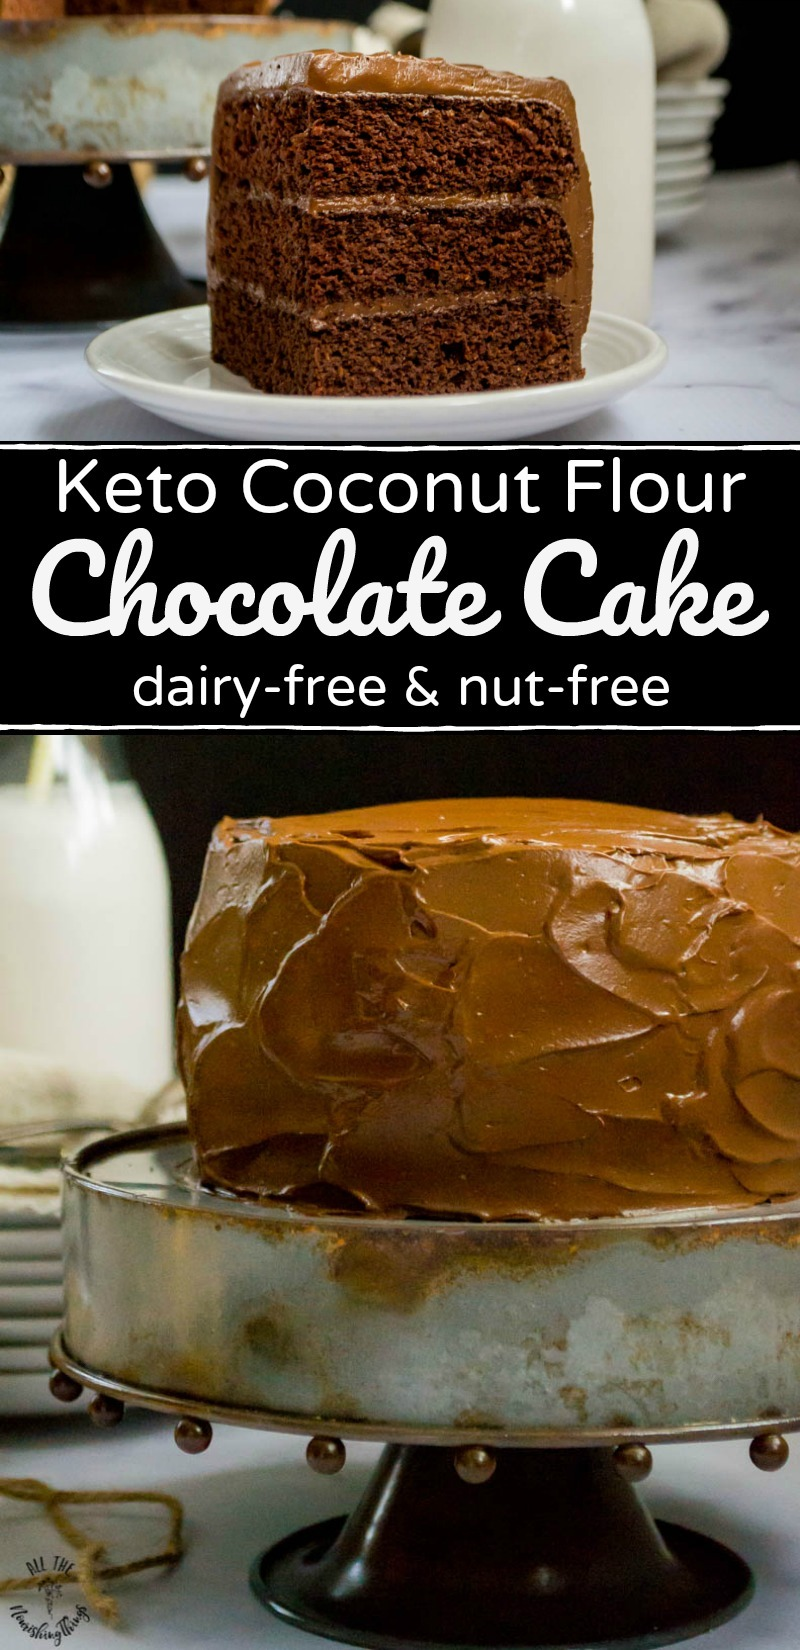 collage of 2 images of keto coconut flour chocolate cake with text overlay between images